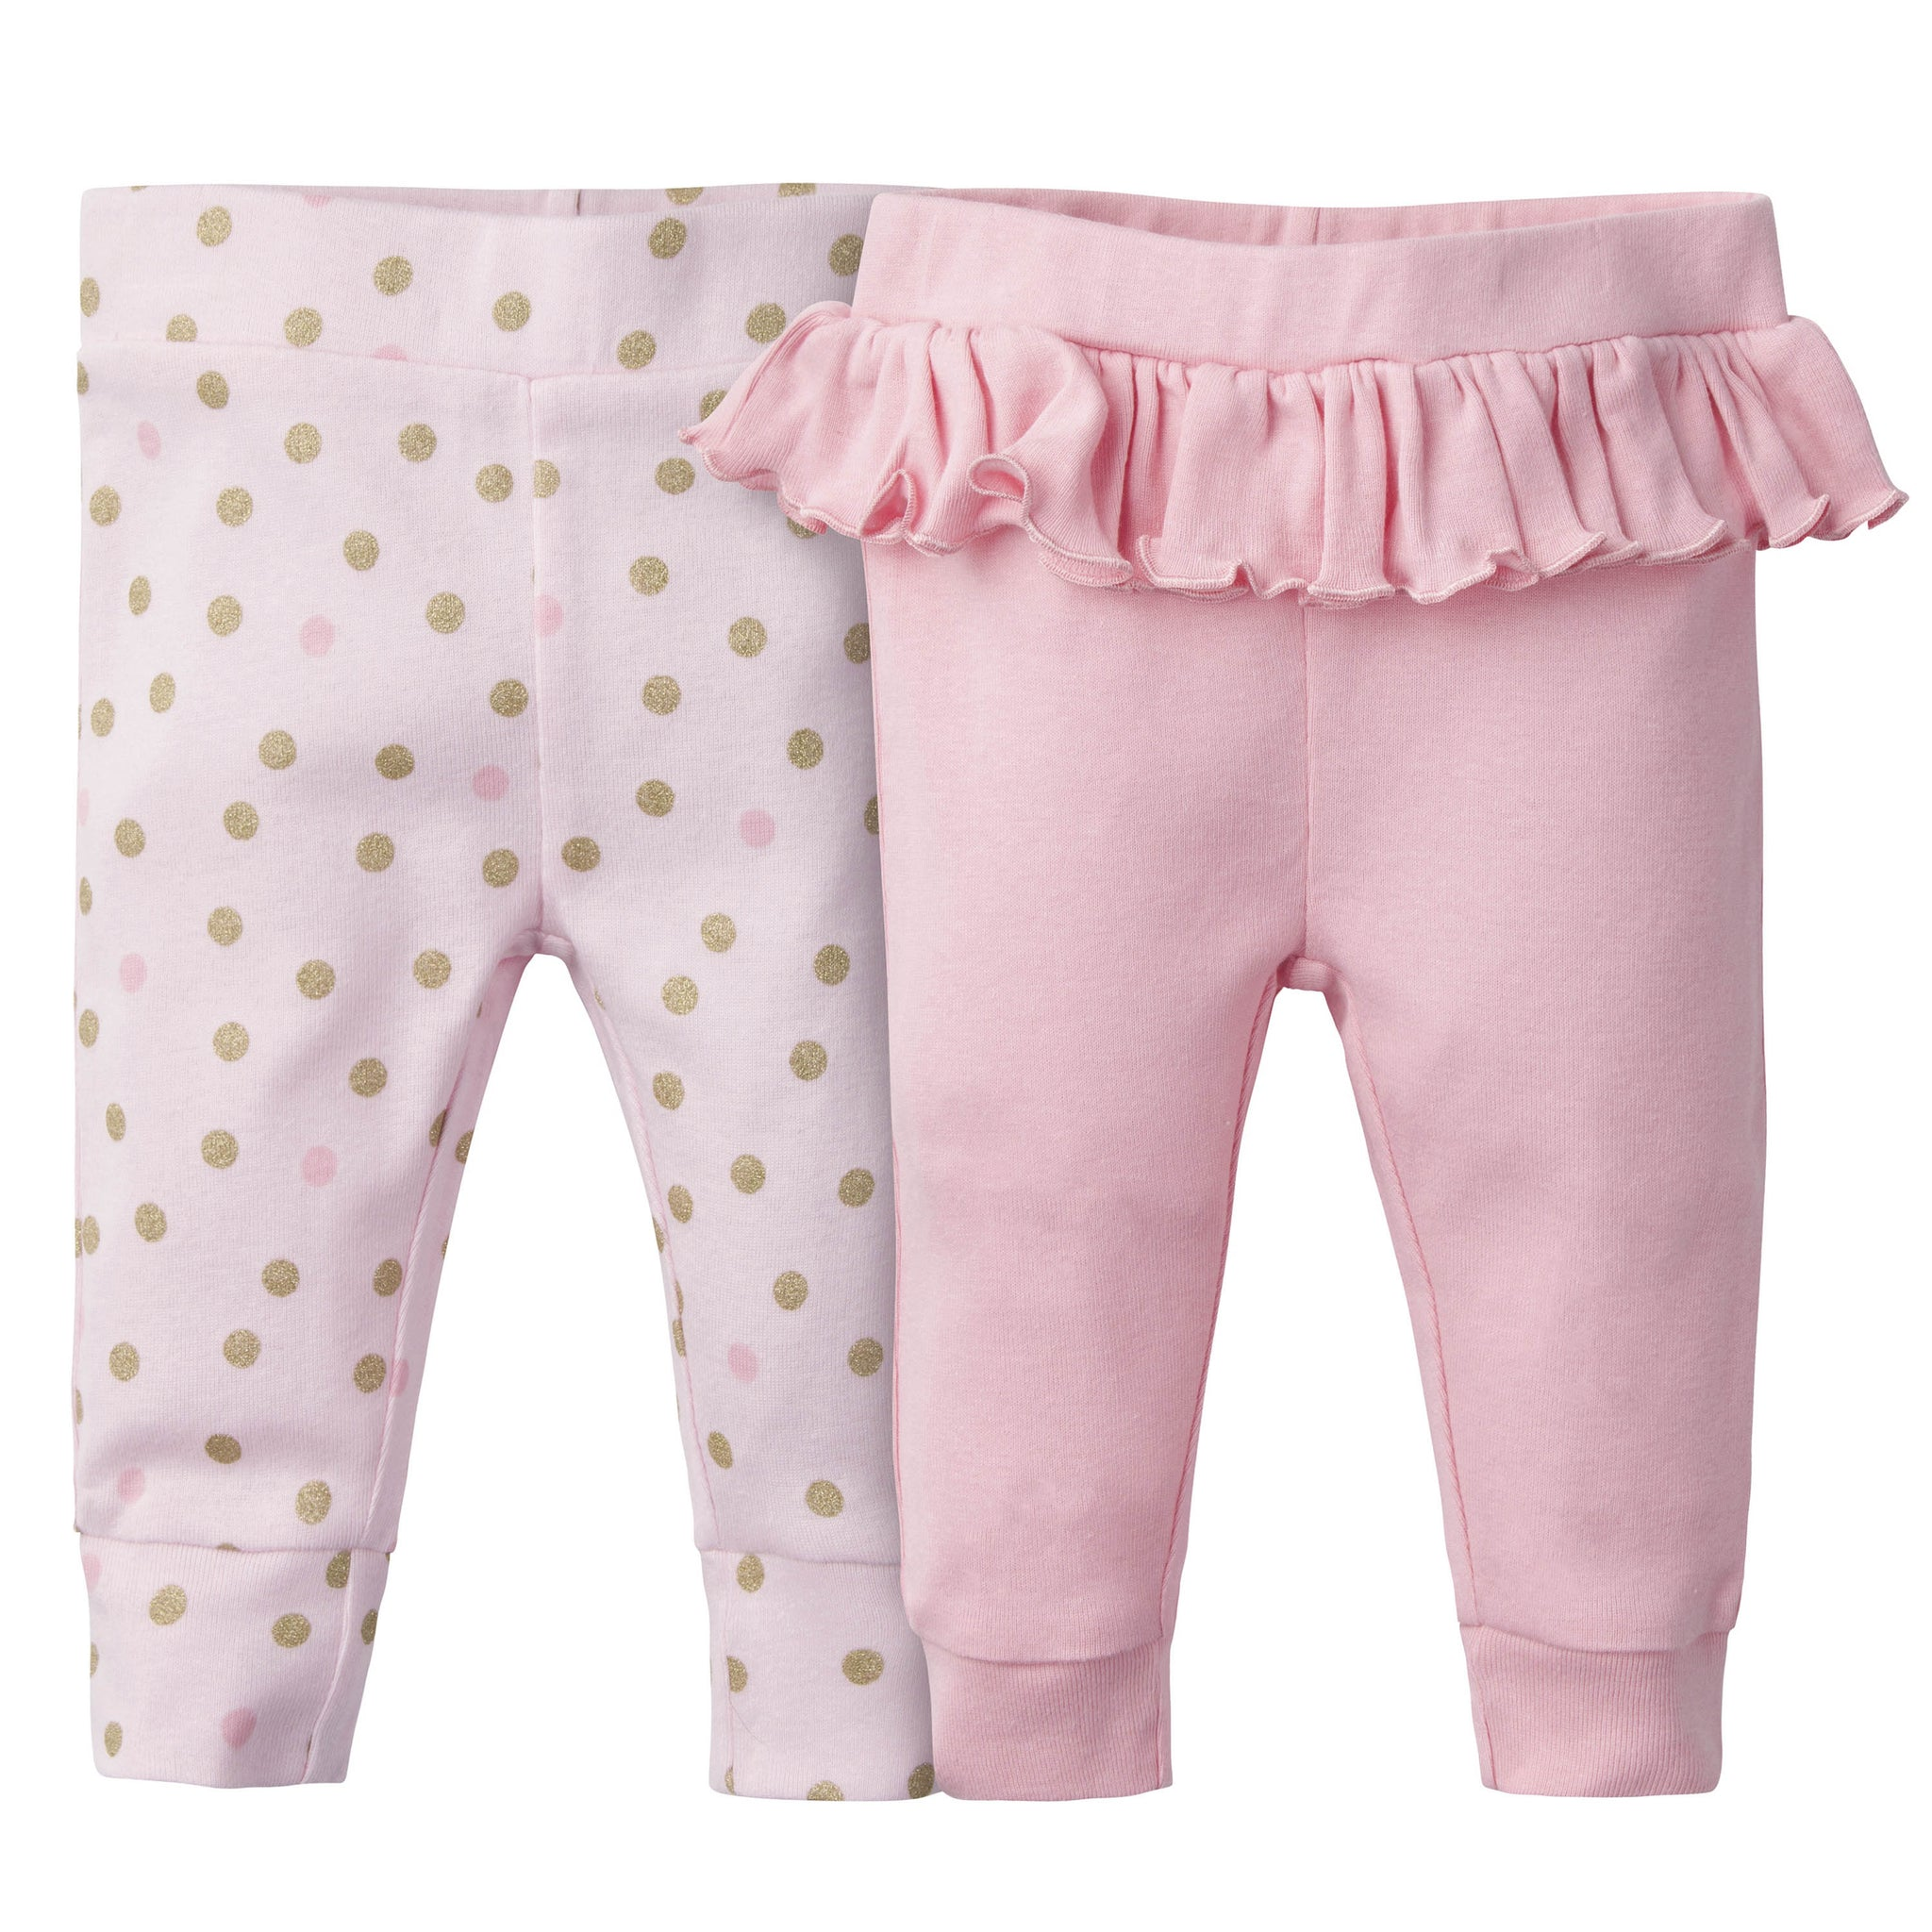 2-Pack Girls Princess Castle Active Pants